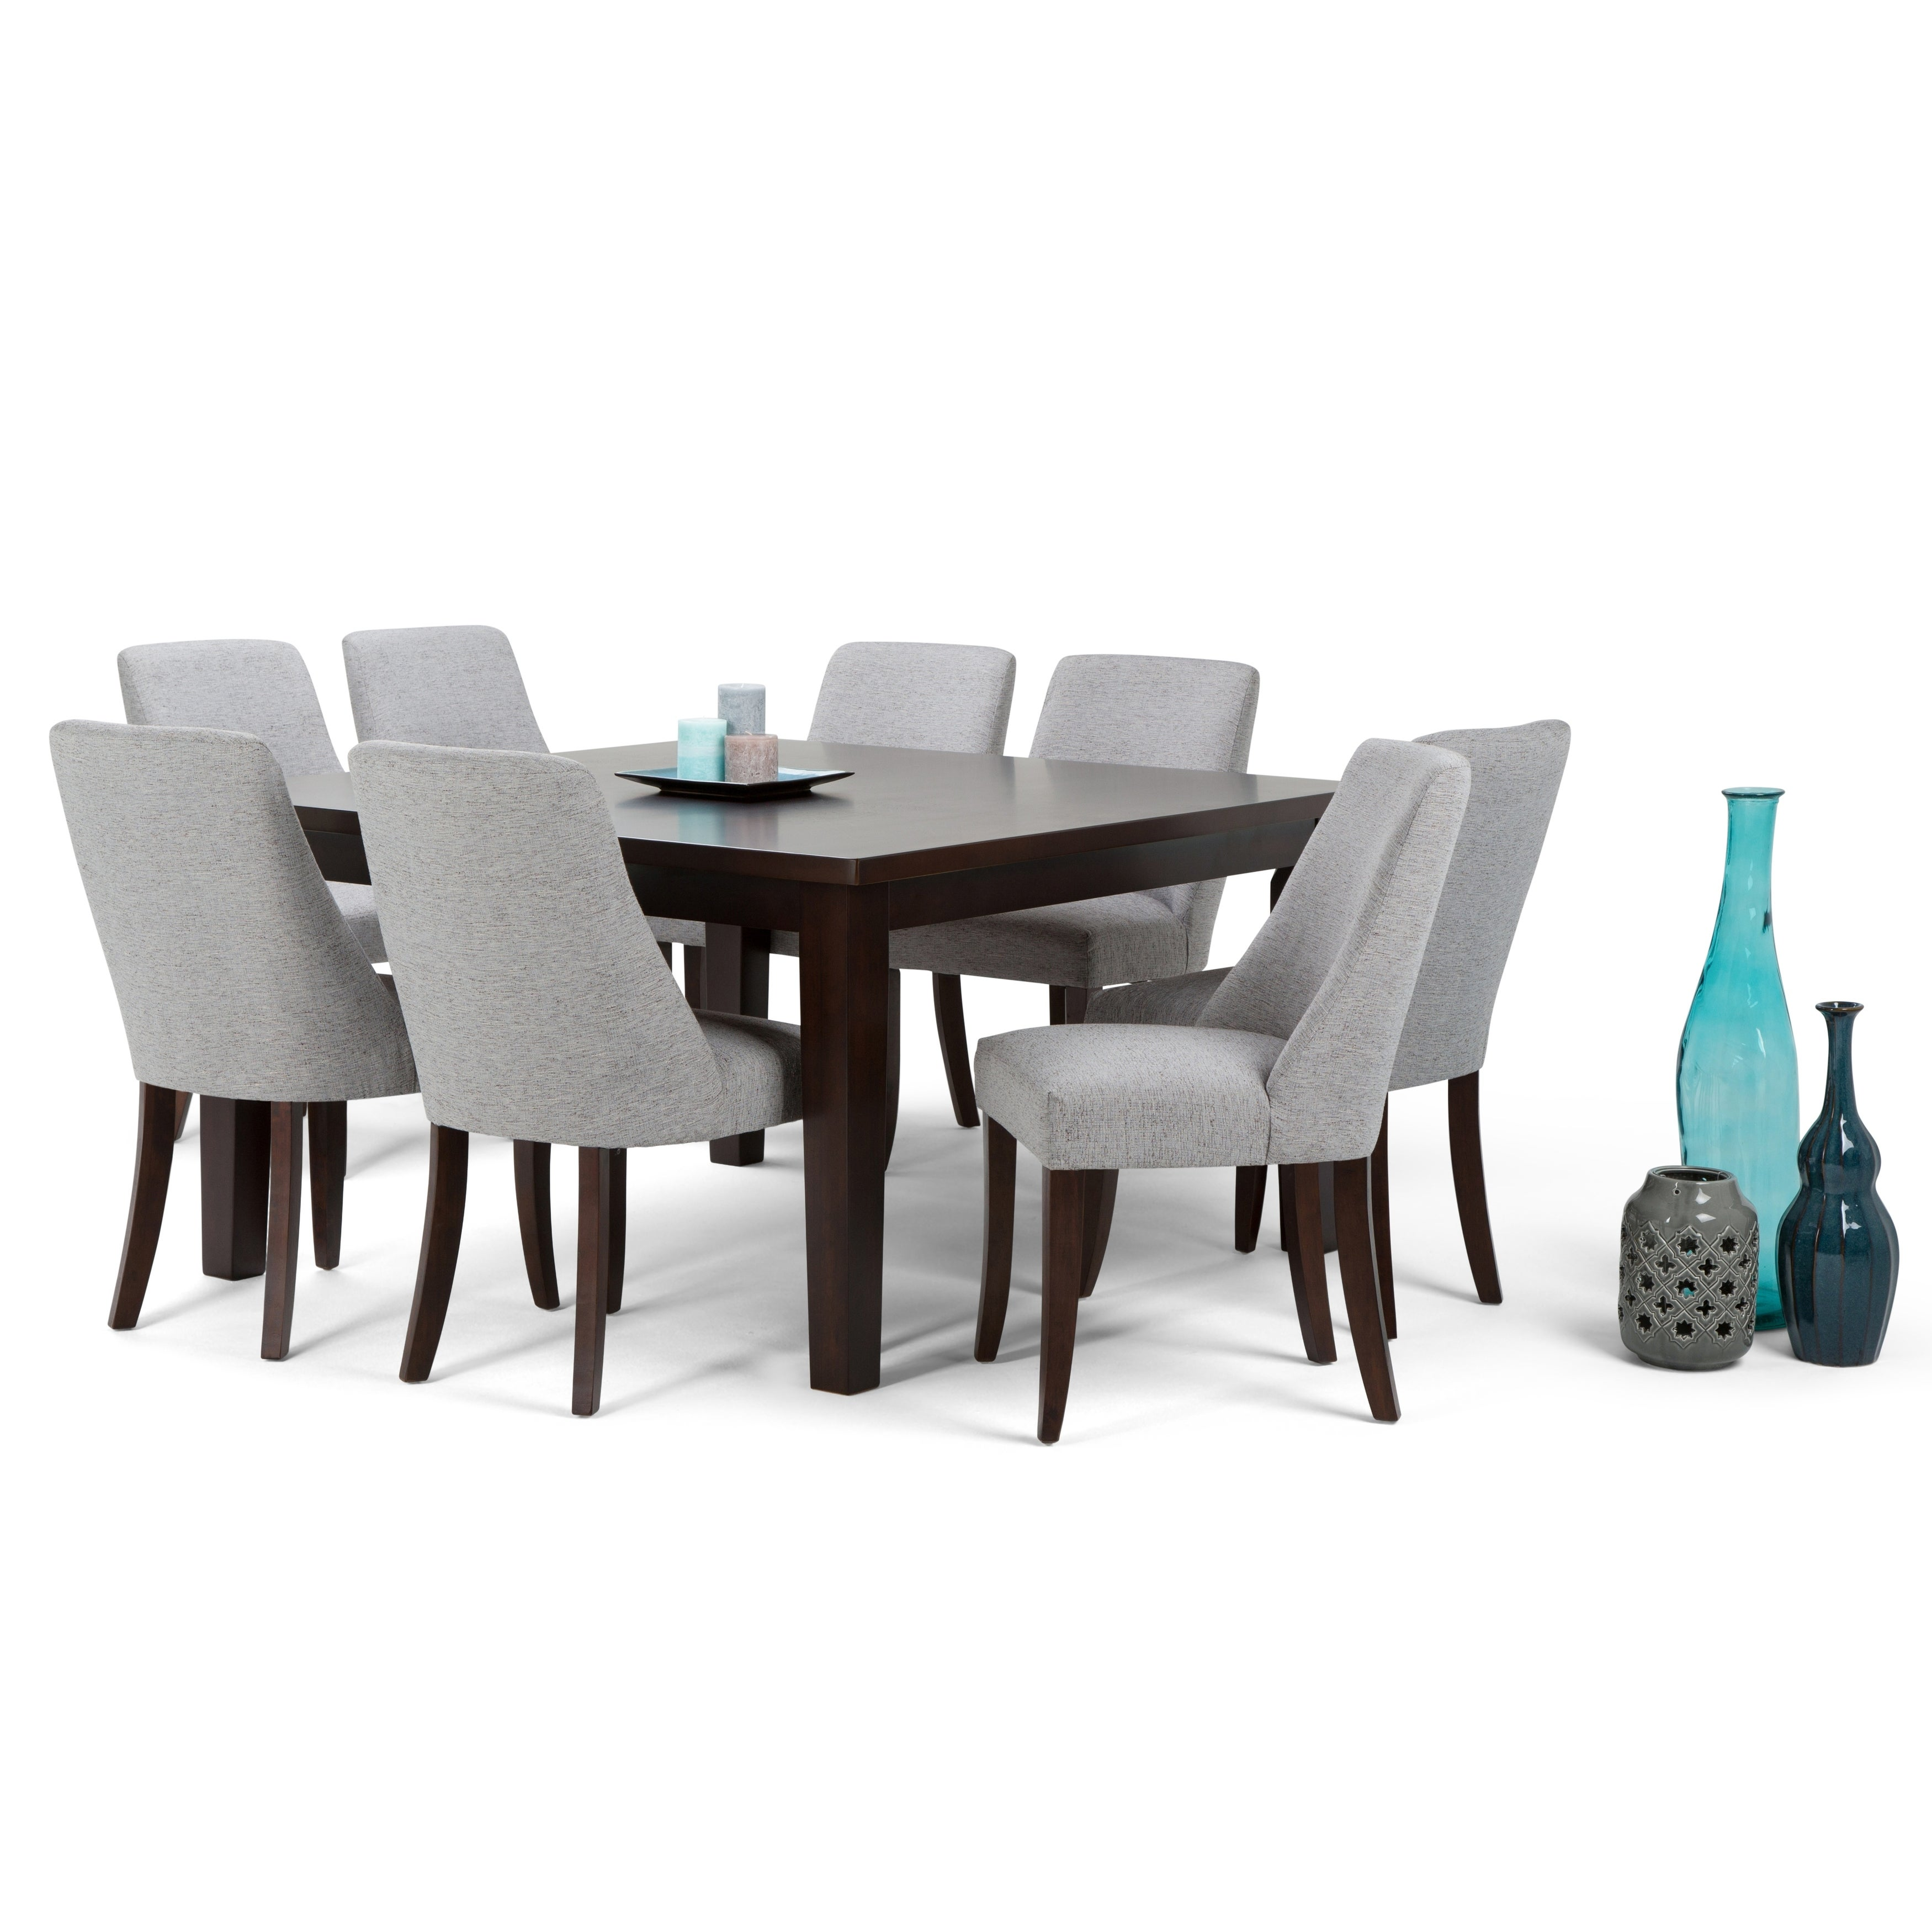 Wyndenhall Haley Contemporary 9 Pc Dining Set With 8 Upholstered Dining Chairs And 54 Inch Wide Table Overstock 12507711